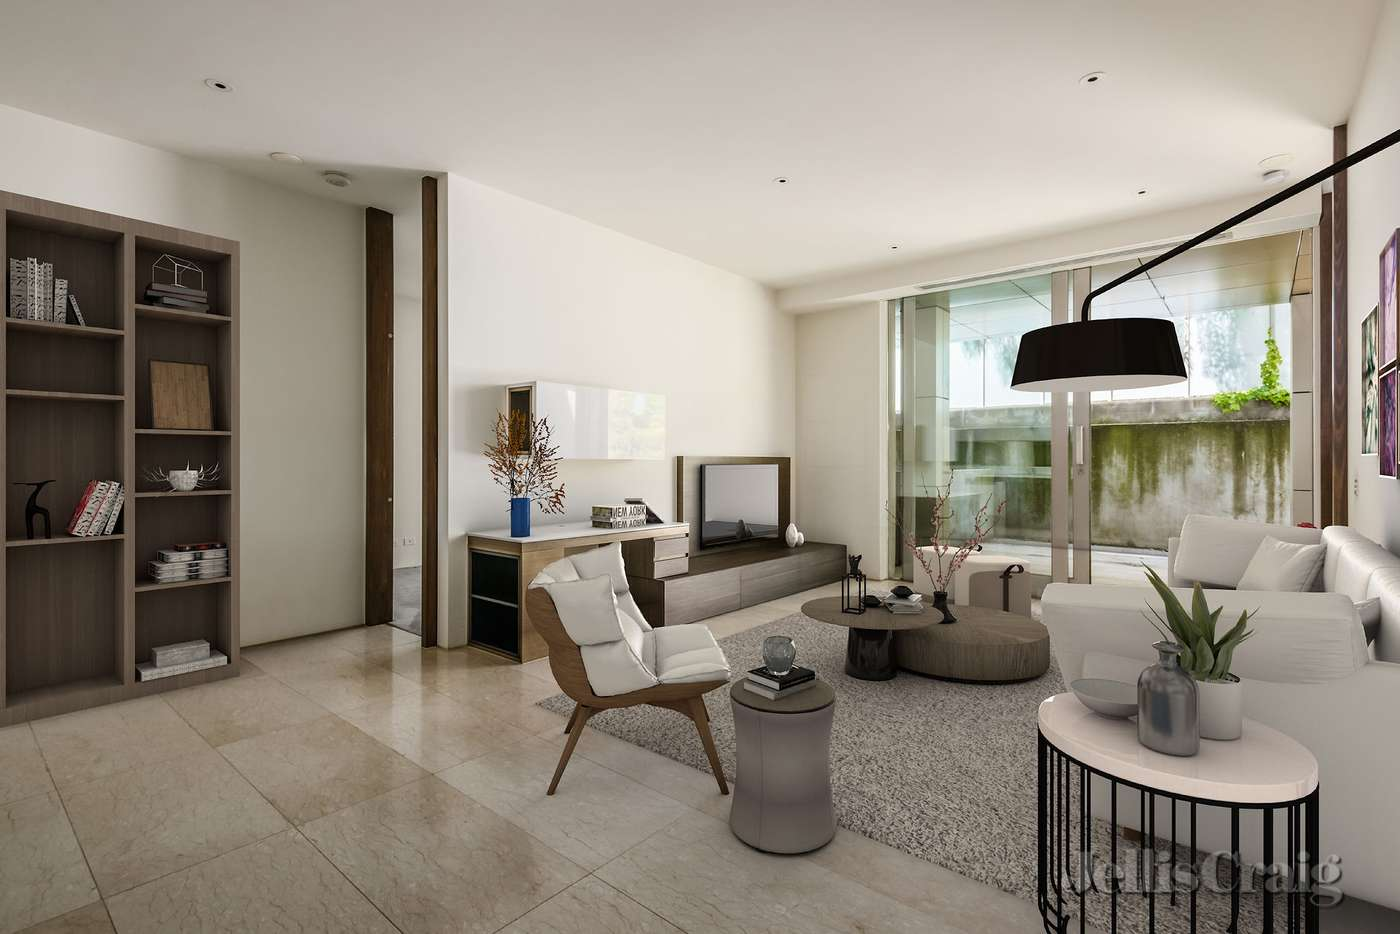 Main view of Homely apartment listing, 7/30 Willansby Avenue, Brighton VIC 3186